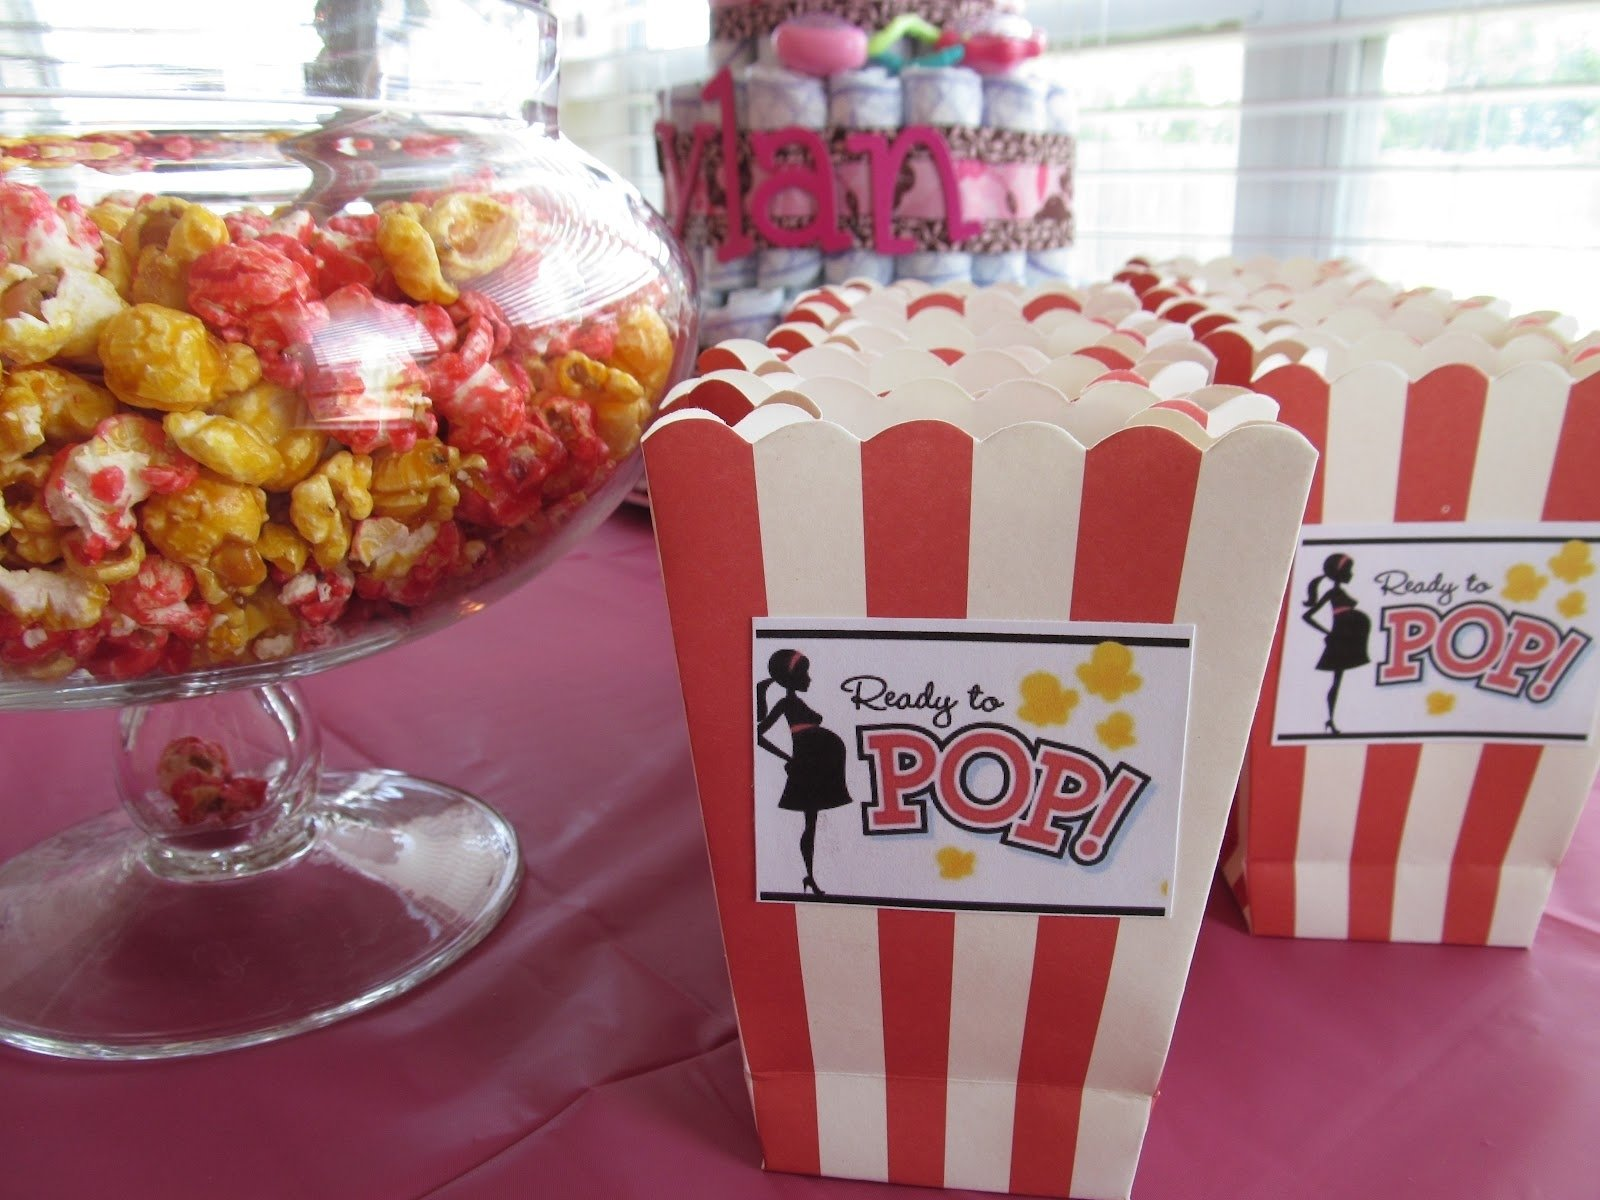 10 Attractive Ready To Pop Baby Shower Ideas incredible decoration ready to pop baby shower ideas lovely design 1